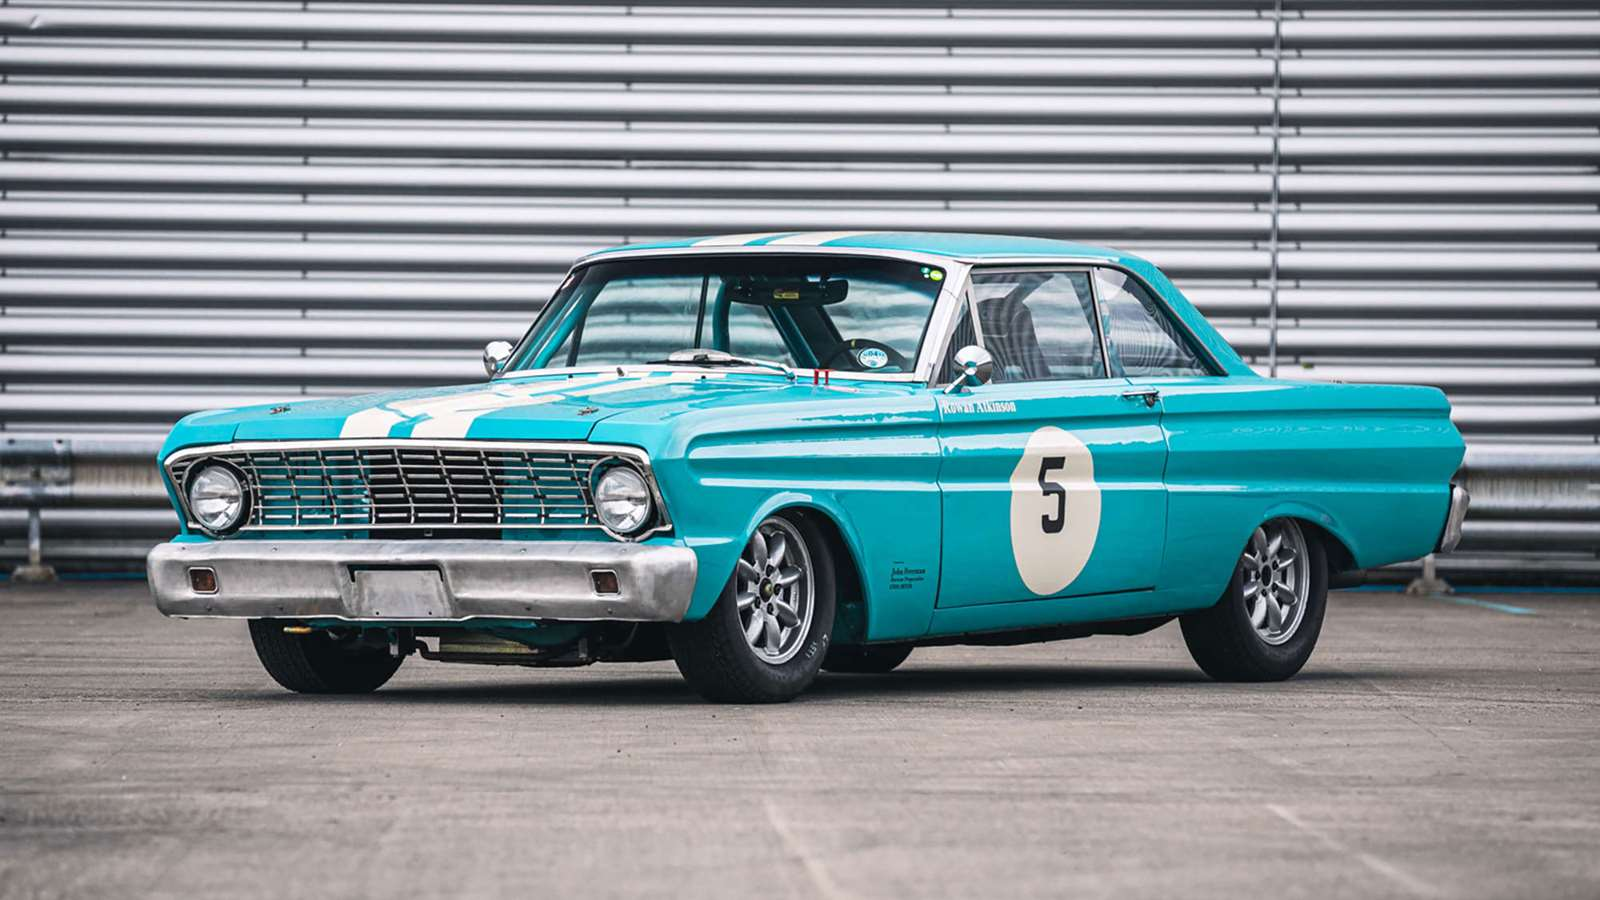 https//www.goodwood.com/globalassets/.road  racing/event coverage/revival/440/440 march/ford falcon rowan atkinson/rowan atkinson ford falcon silverstone auctions goodwood 1840440440.jpgcrop=40,40,264040,40&width=164040